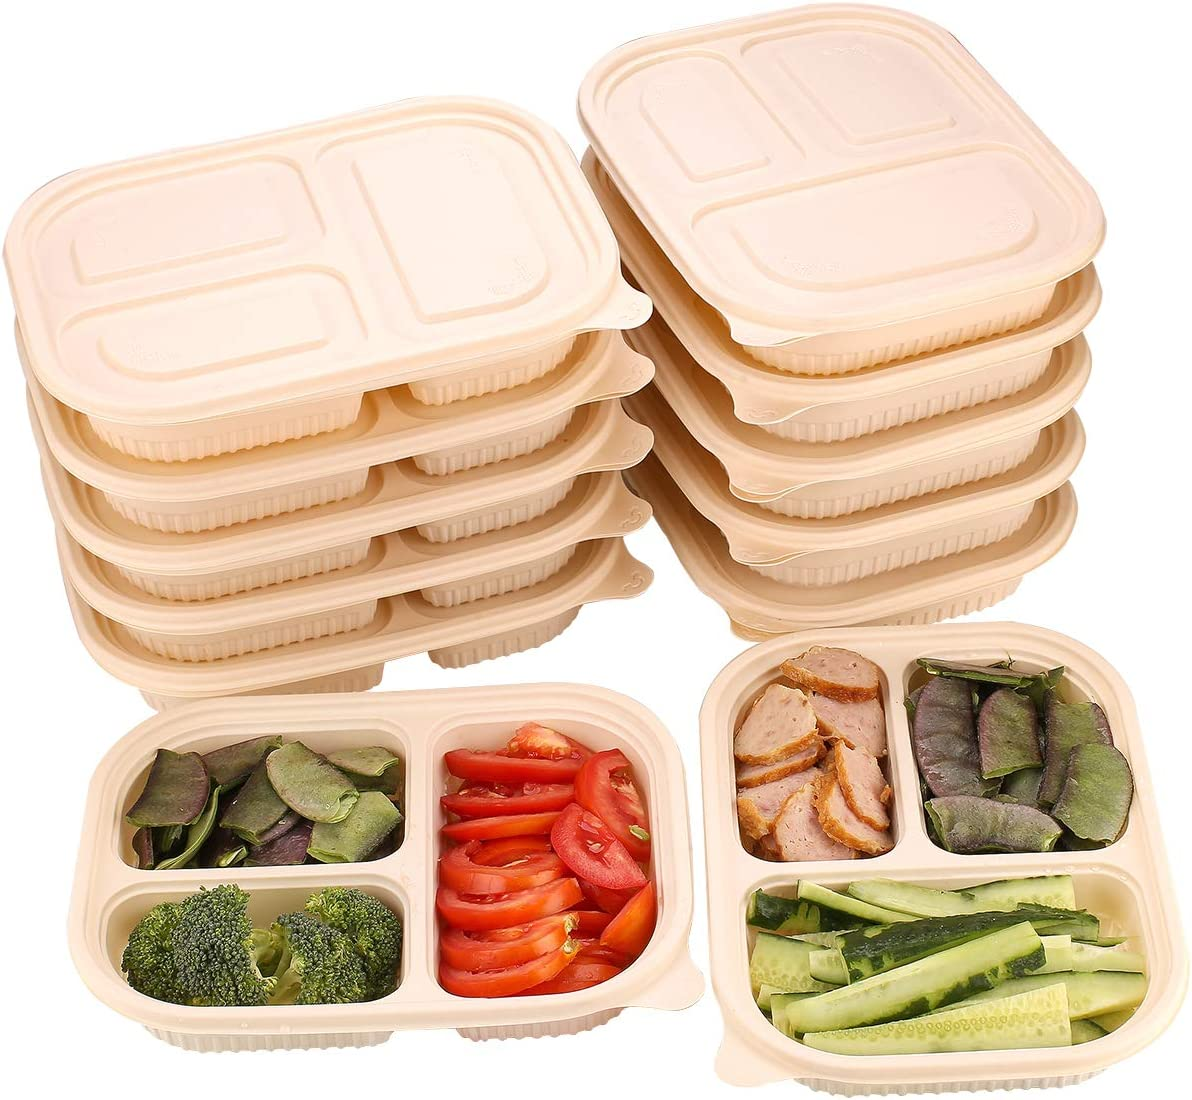 MONICA Eco-friendly Meal Prep Containers 3 Compartment 10Pack Biodegradable Disposable Cornstarch Lunch Box 33oz Heavy Duty Contianer To Go Container,Leak-Proof,Microwaveable Freezer,beige